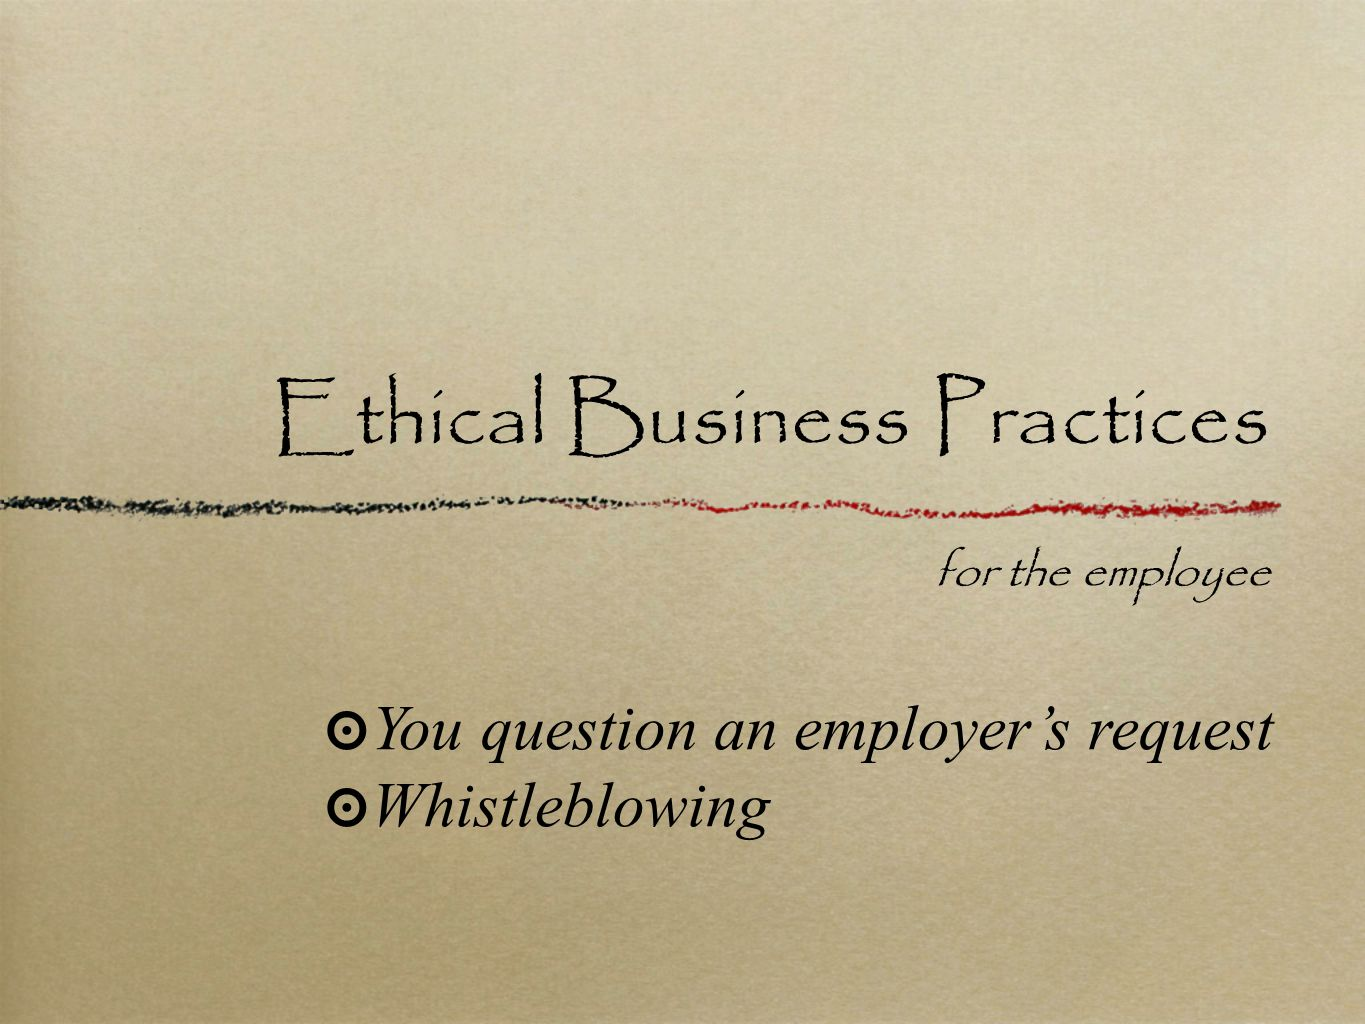 Ethical Business Practices for the employee ๏ You question an employer's request ๏ Whistleblowing